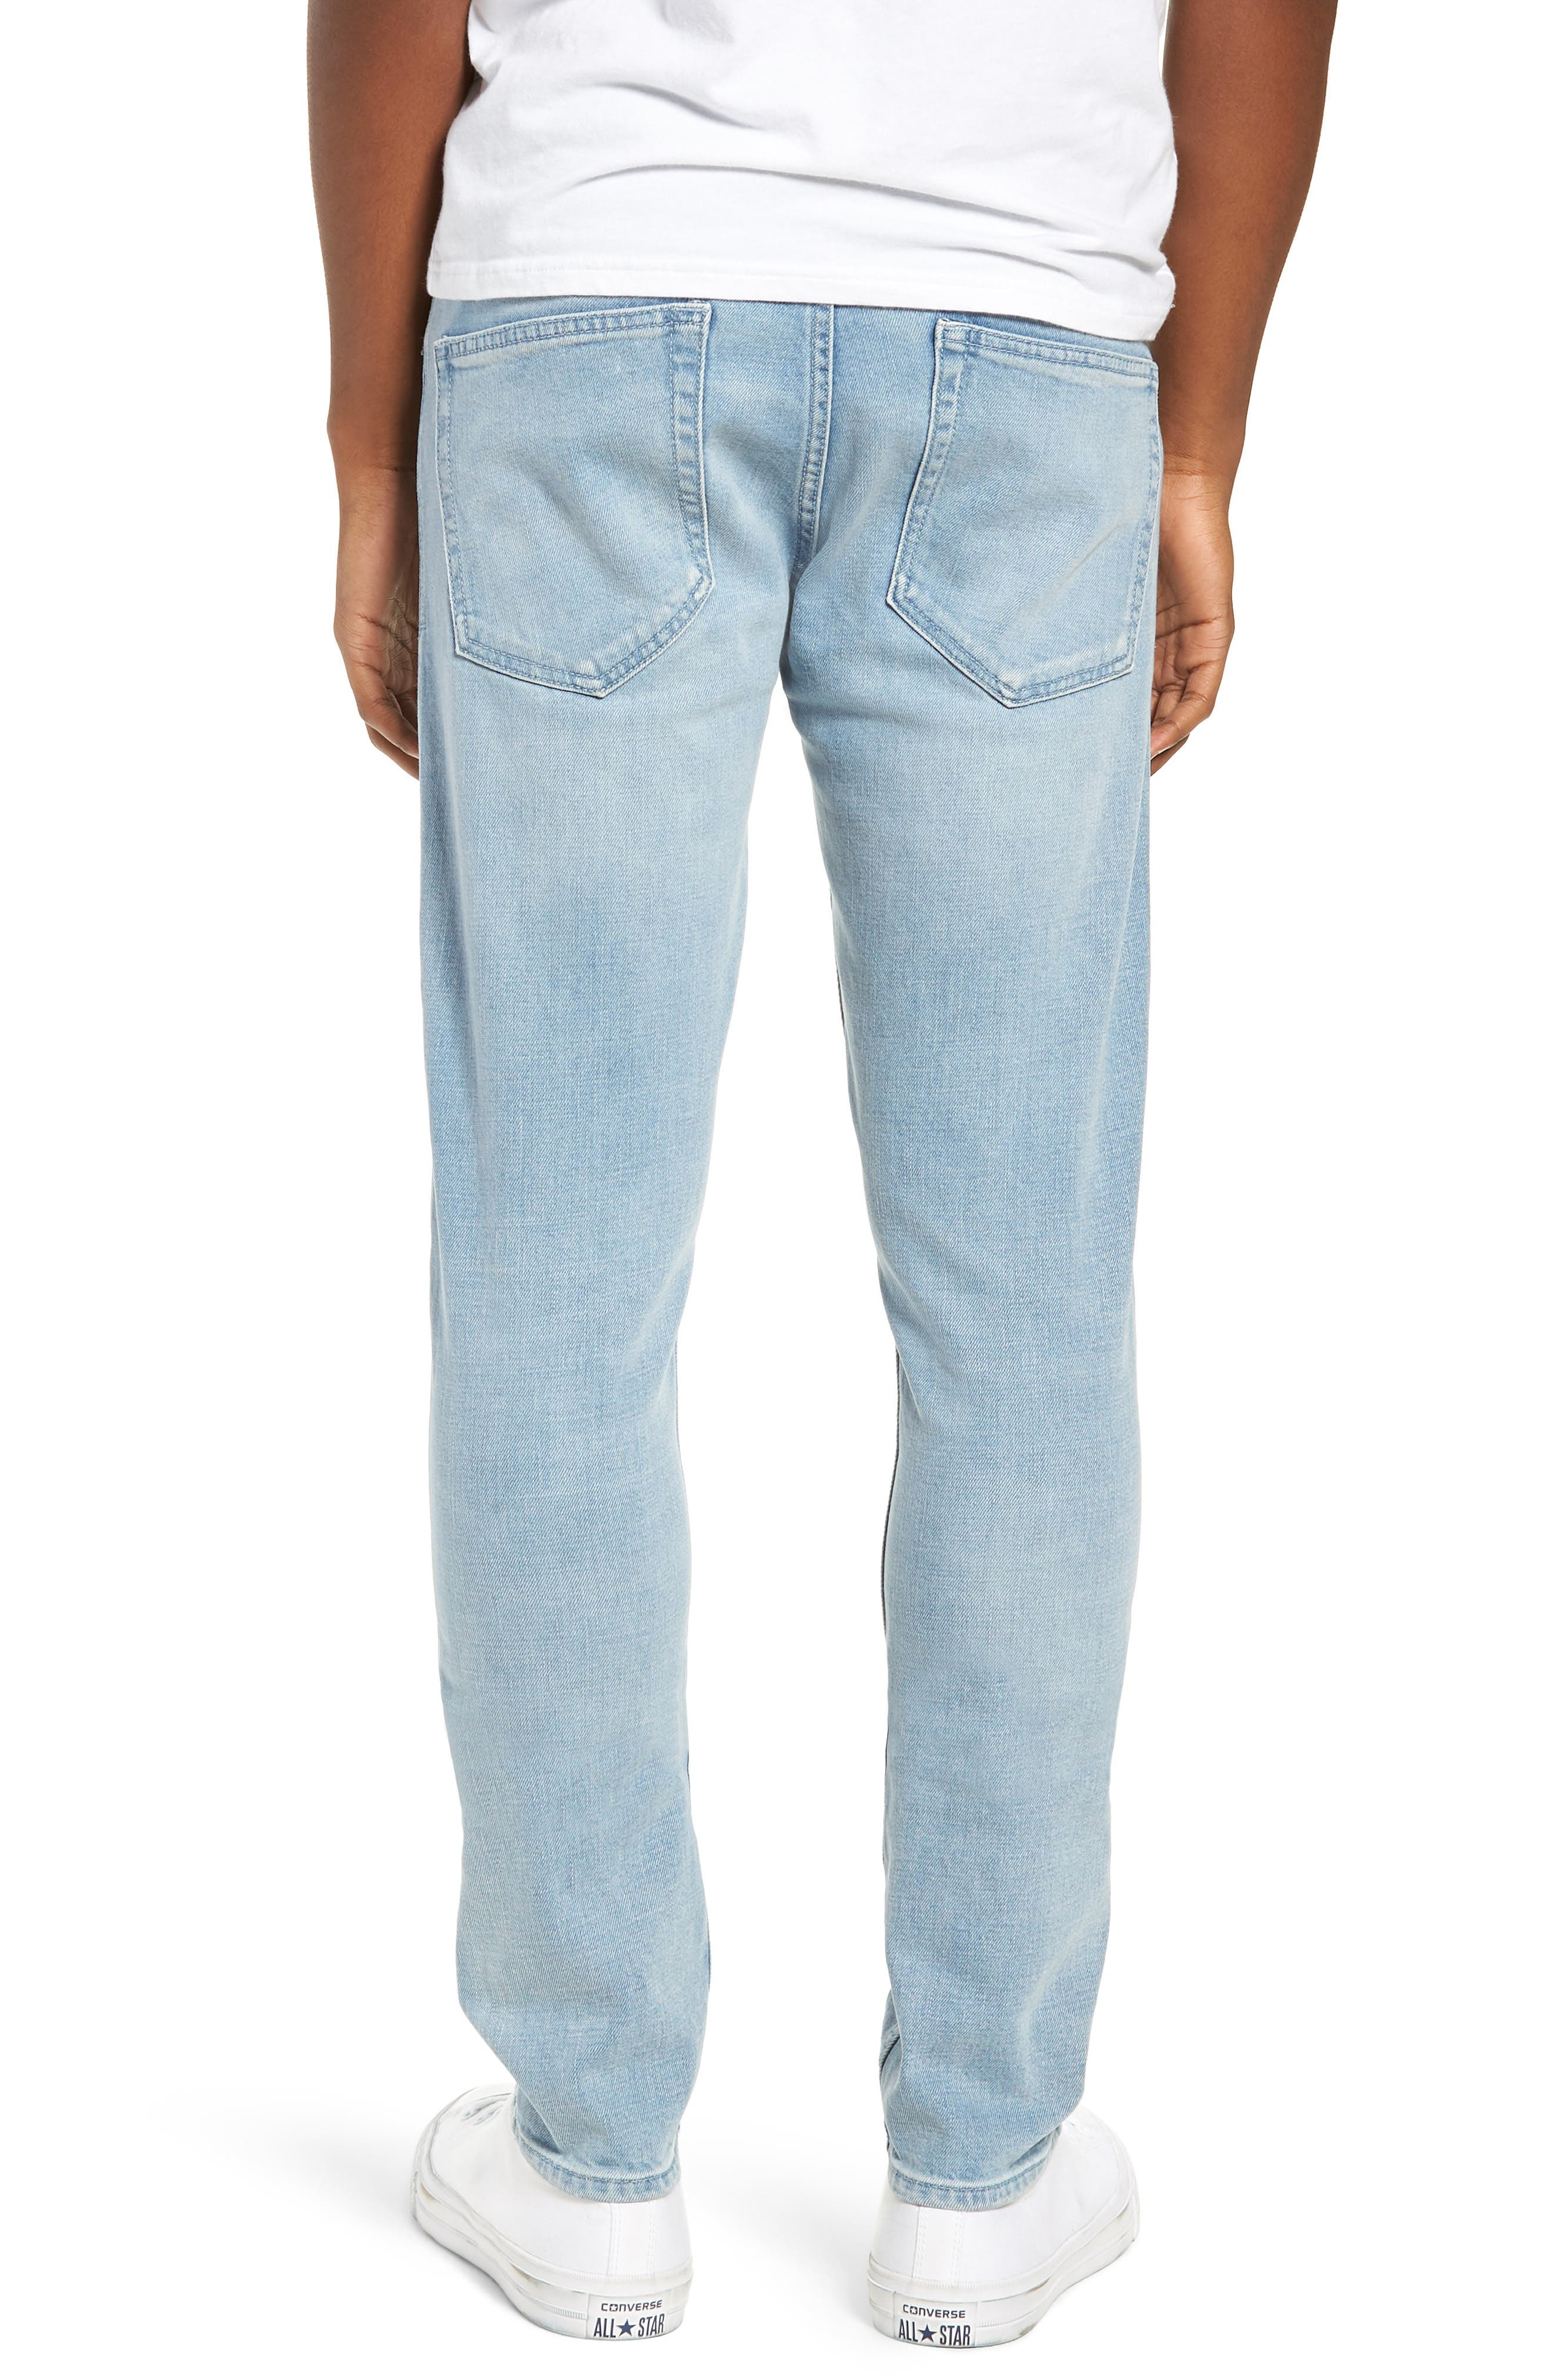 Horatio Skinny Fit Jeans,                             Alternate thumbnail 2, color,                             450